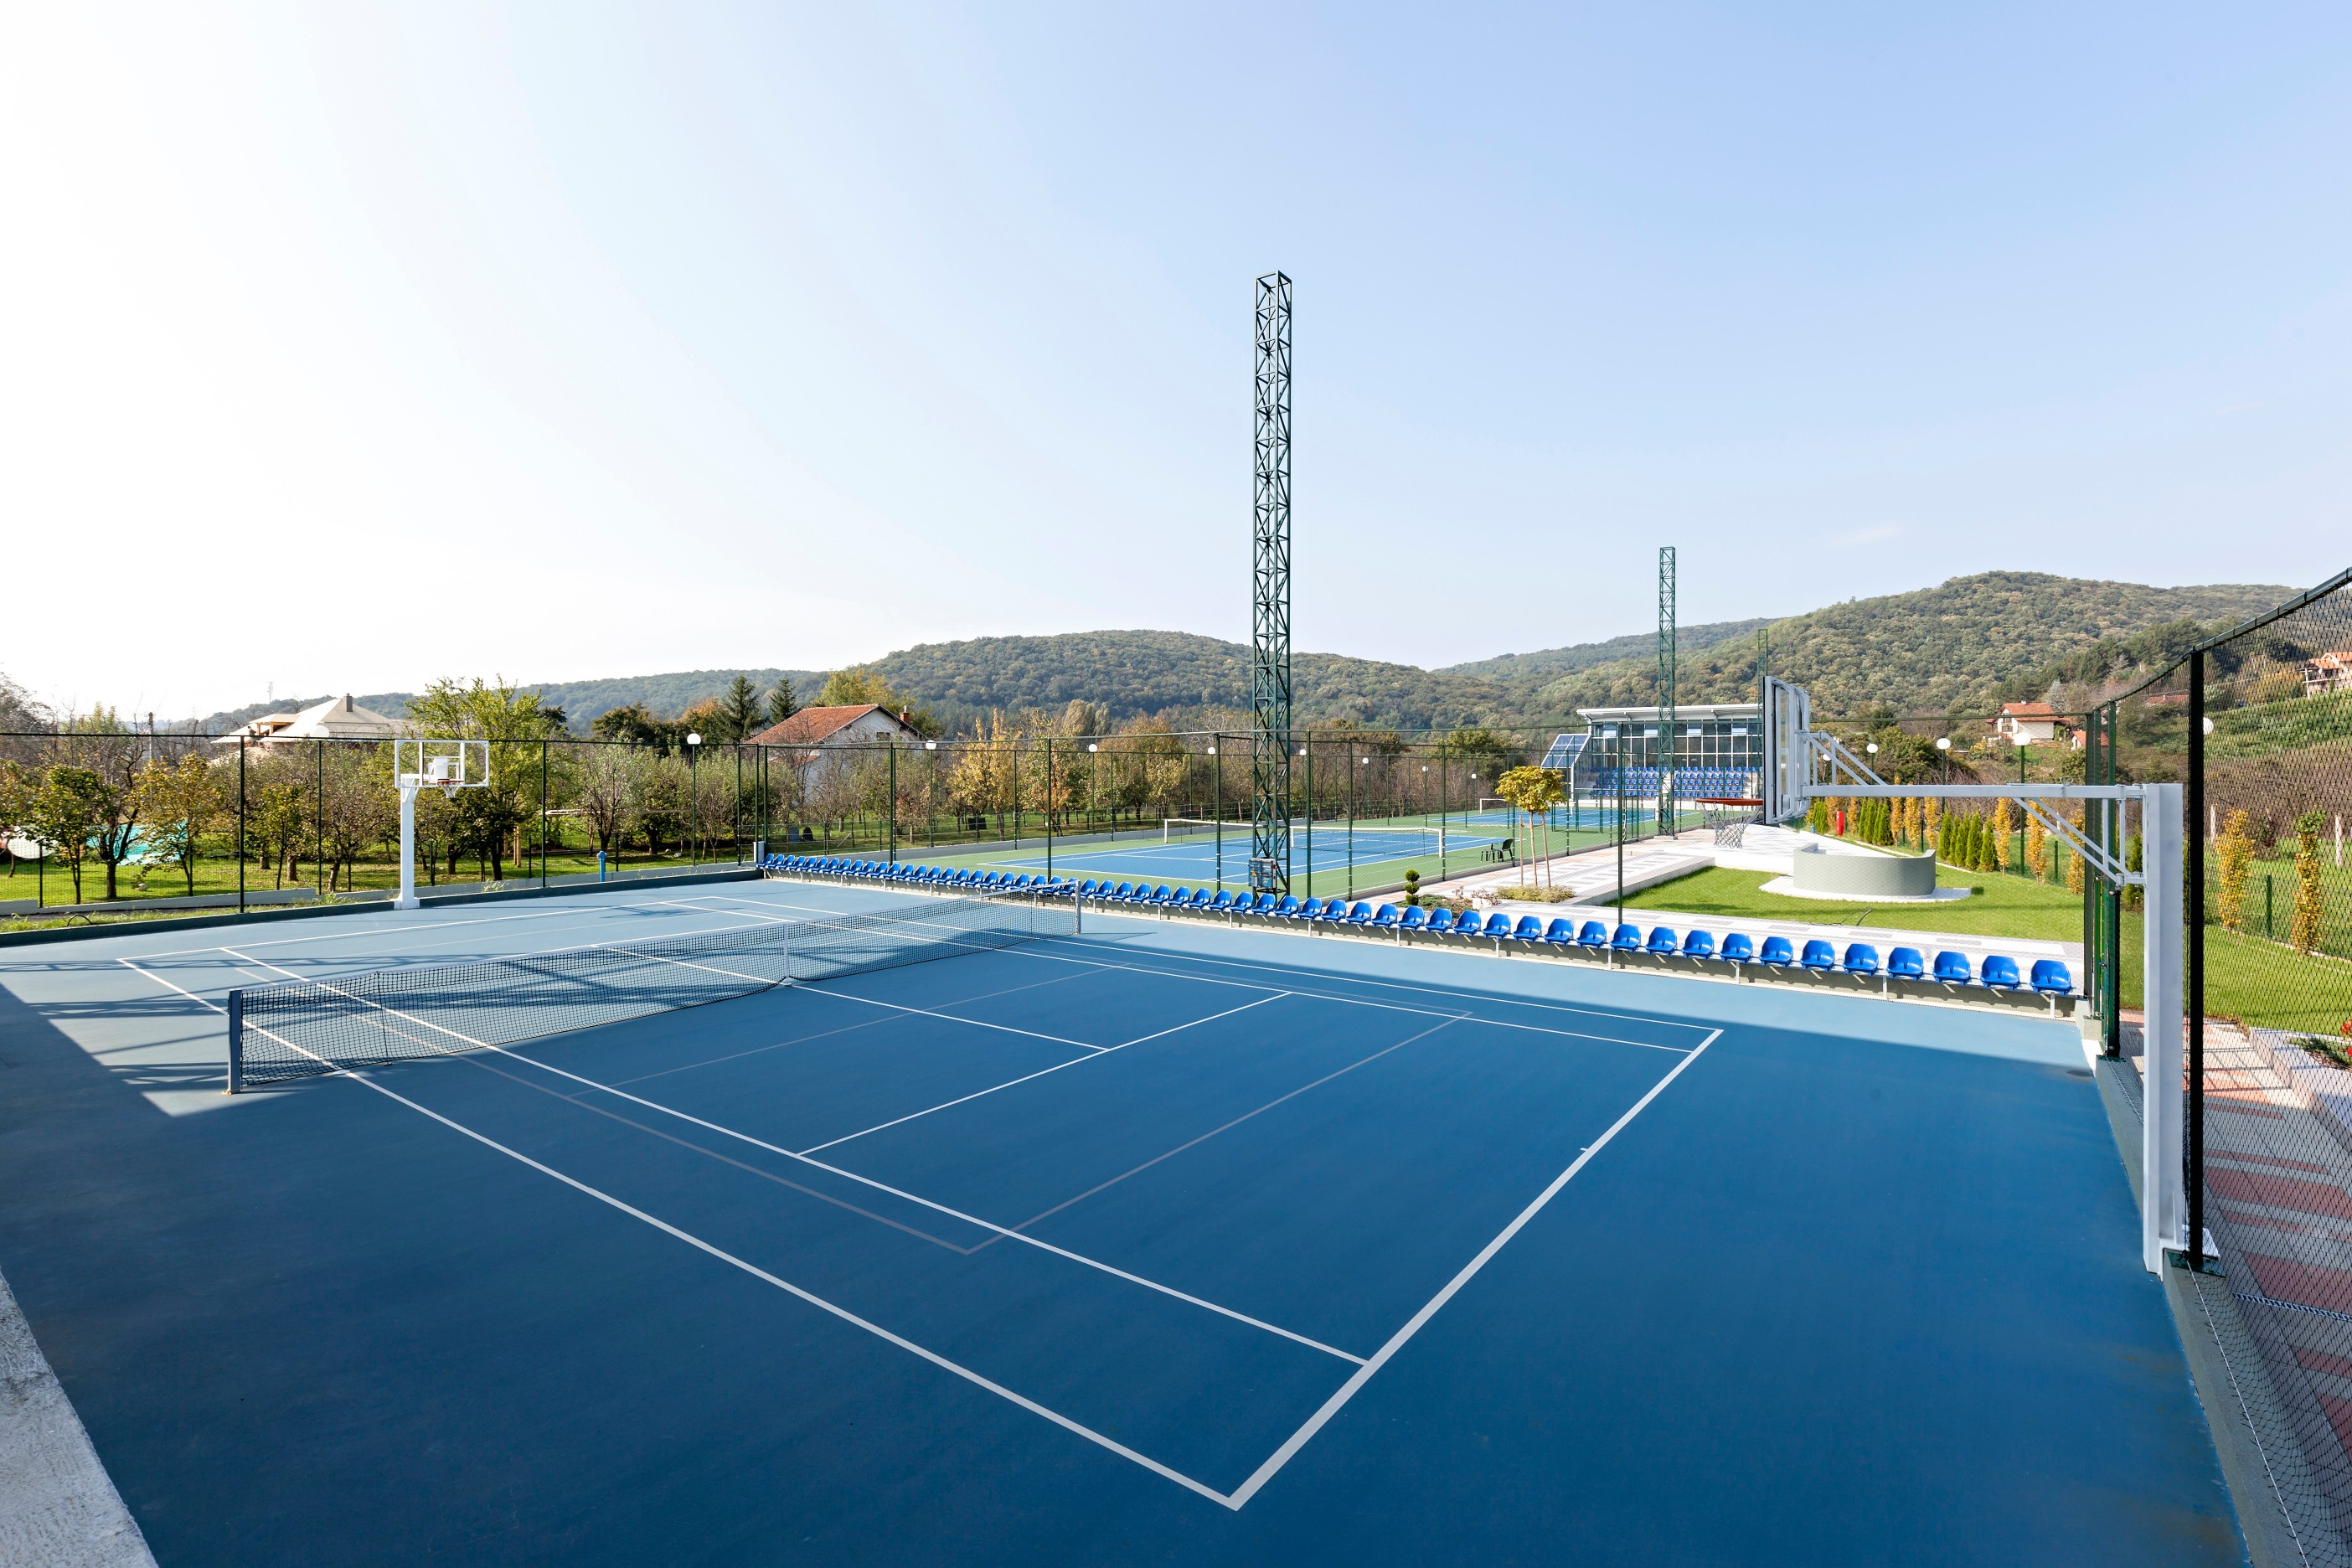 ETC Sports Surfaces specialises in tennis court surfaces installed to the highest professional standards